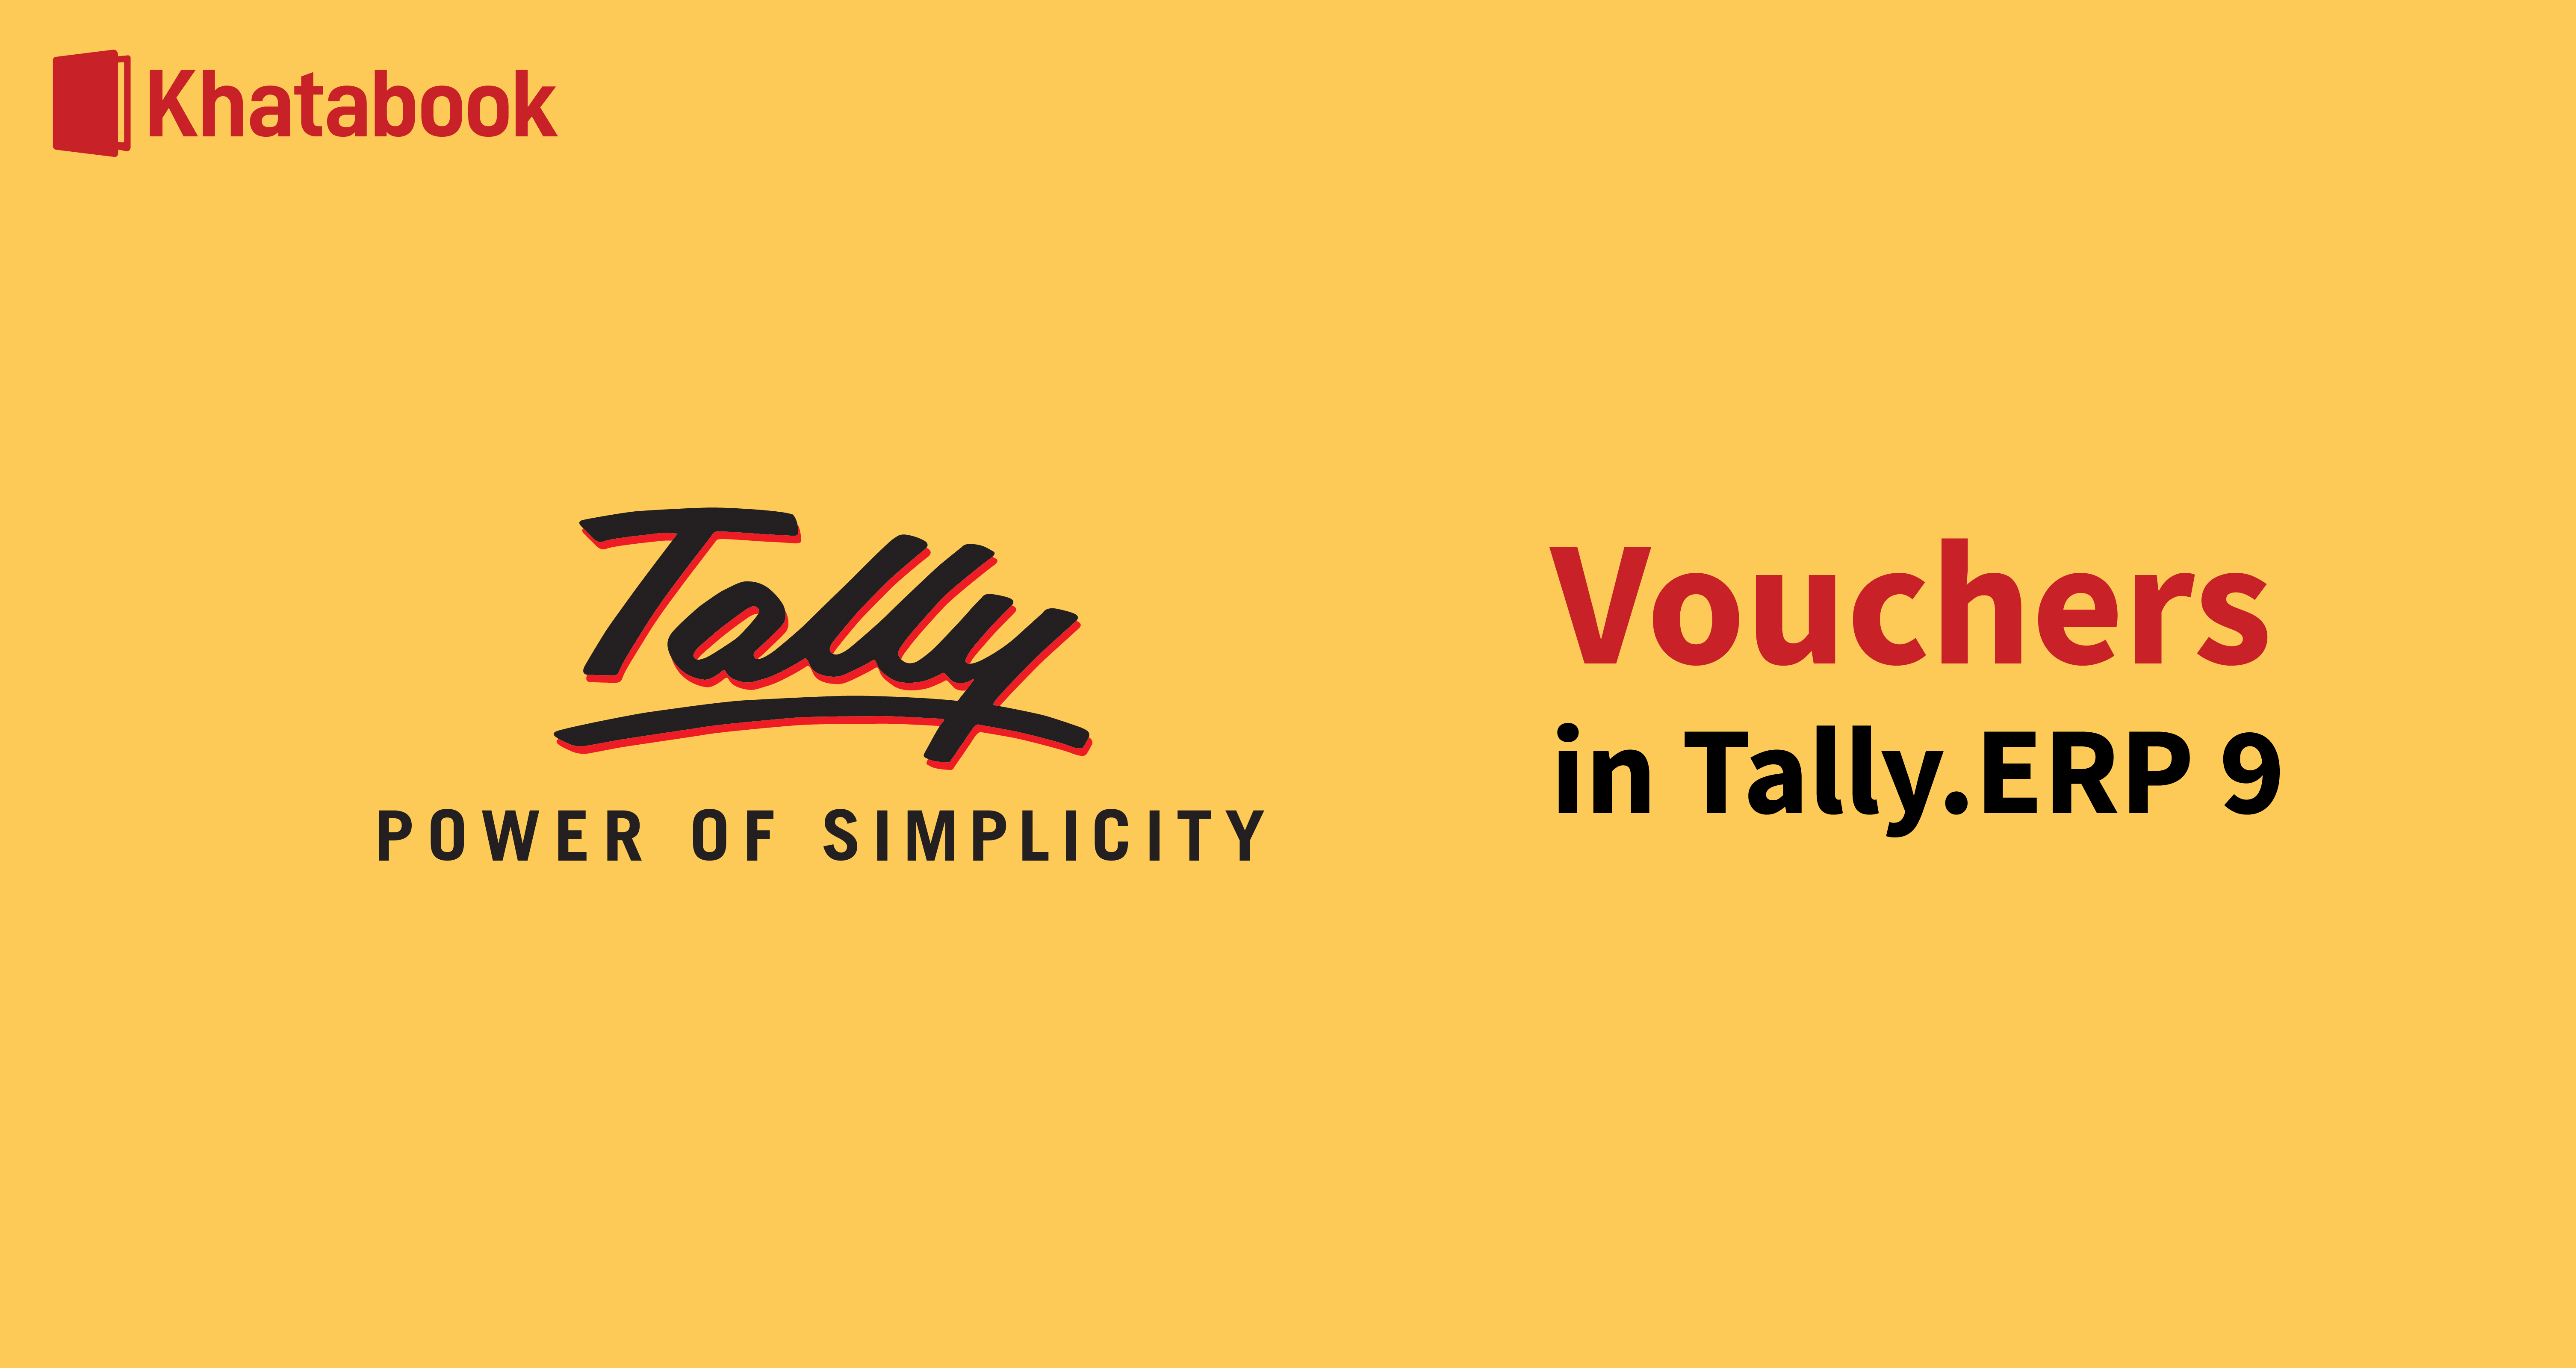 All About Vouchers in Tally.ERP 9